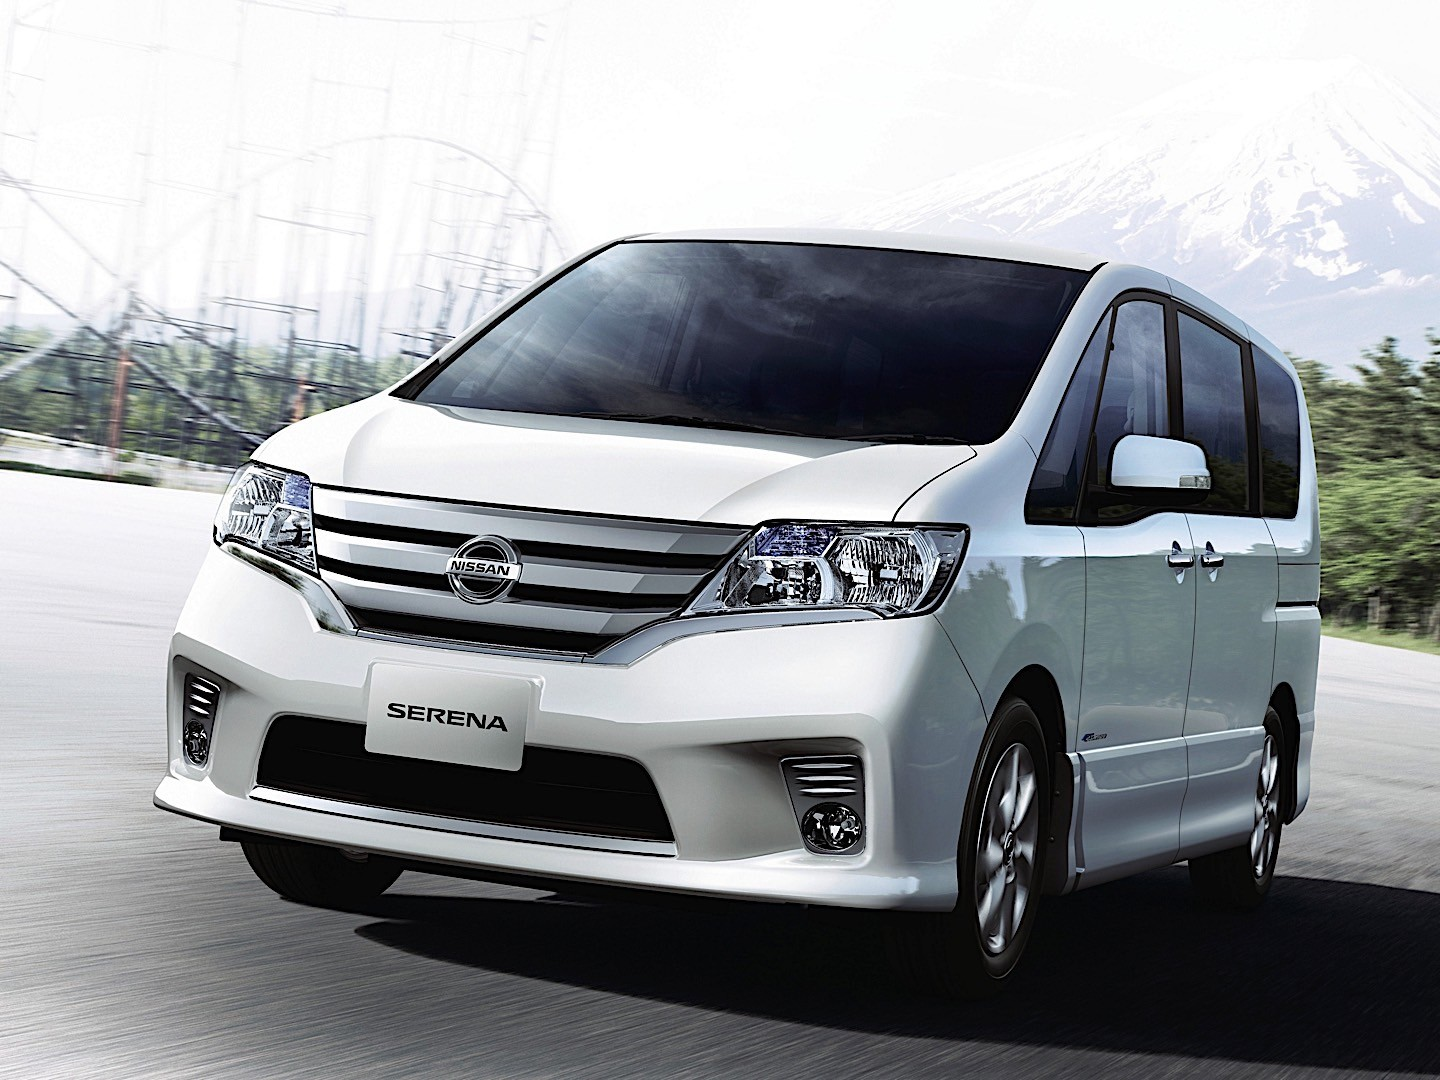 nissan serena specs 2010 2011 2012 2013 2014 2015 2016 autoevolution. Black Bedroom Furniture Sets. Home Design Ideas